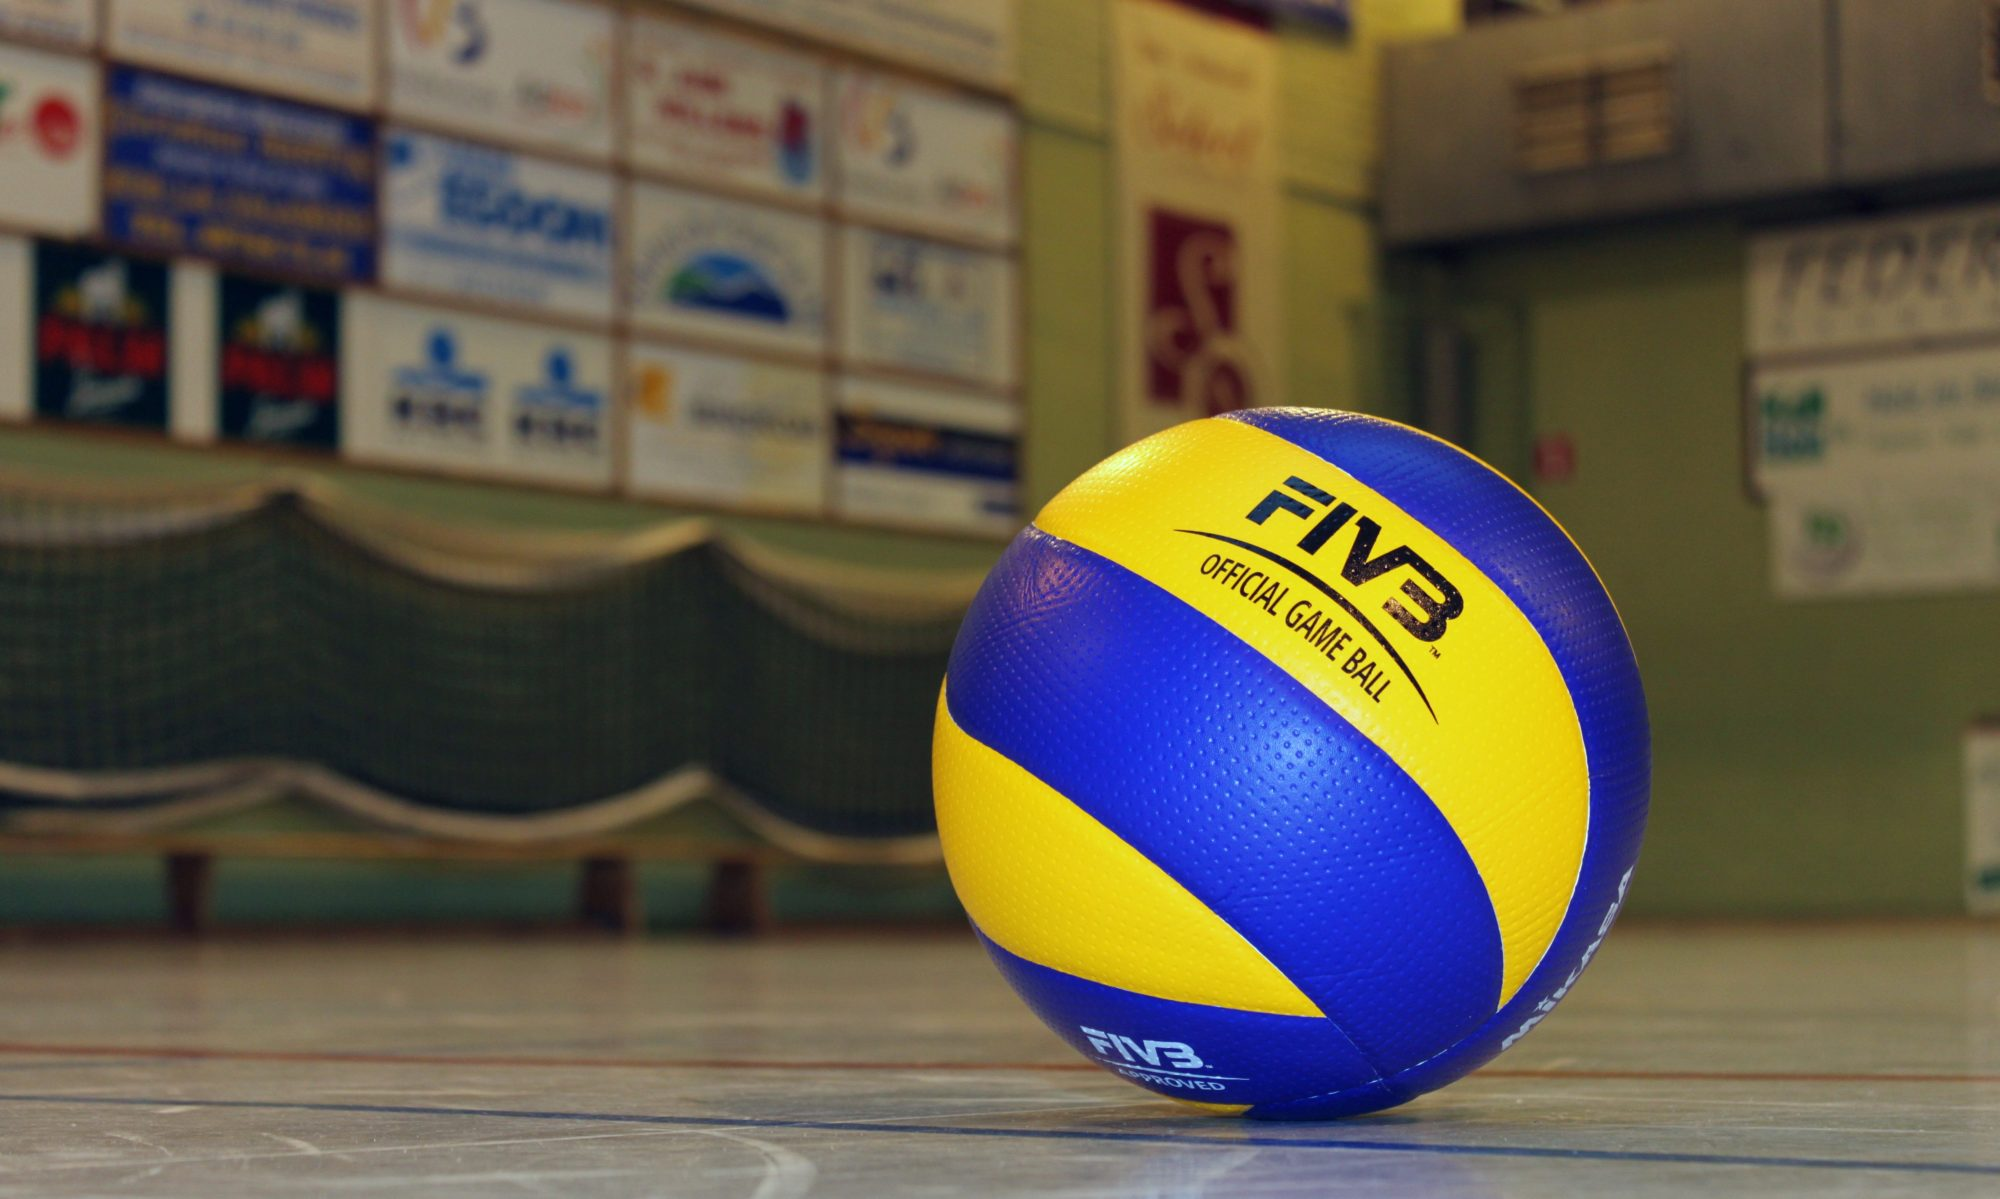 FSV1895 - Volleyball